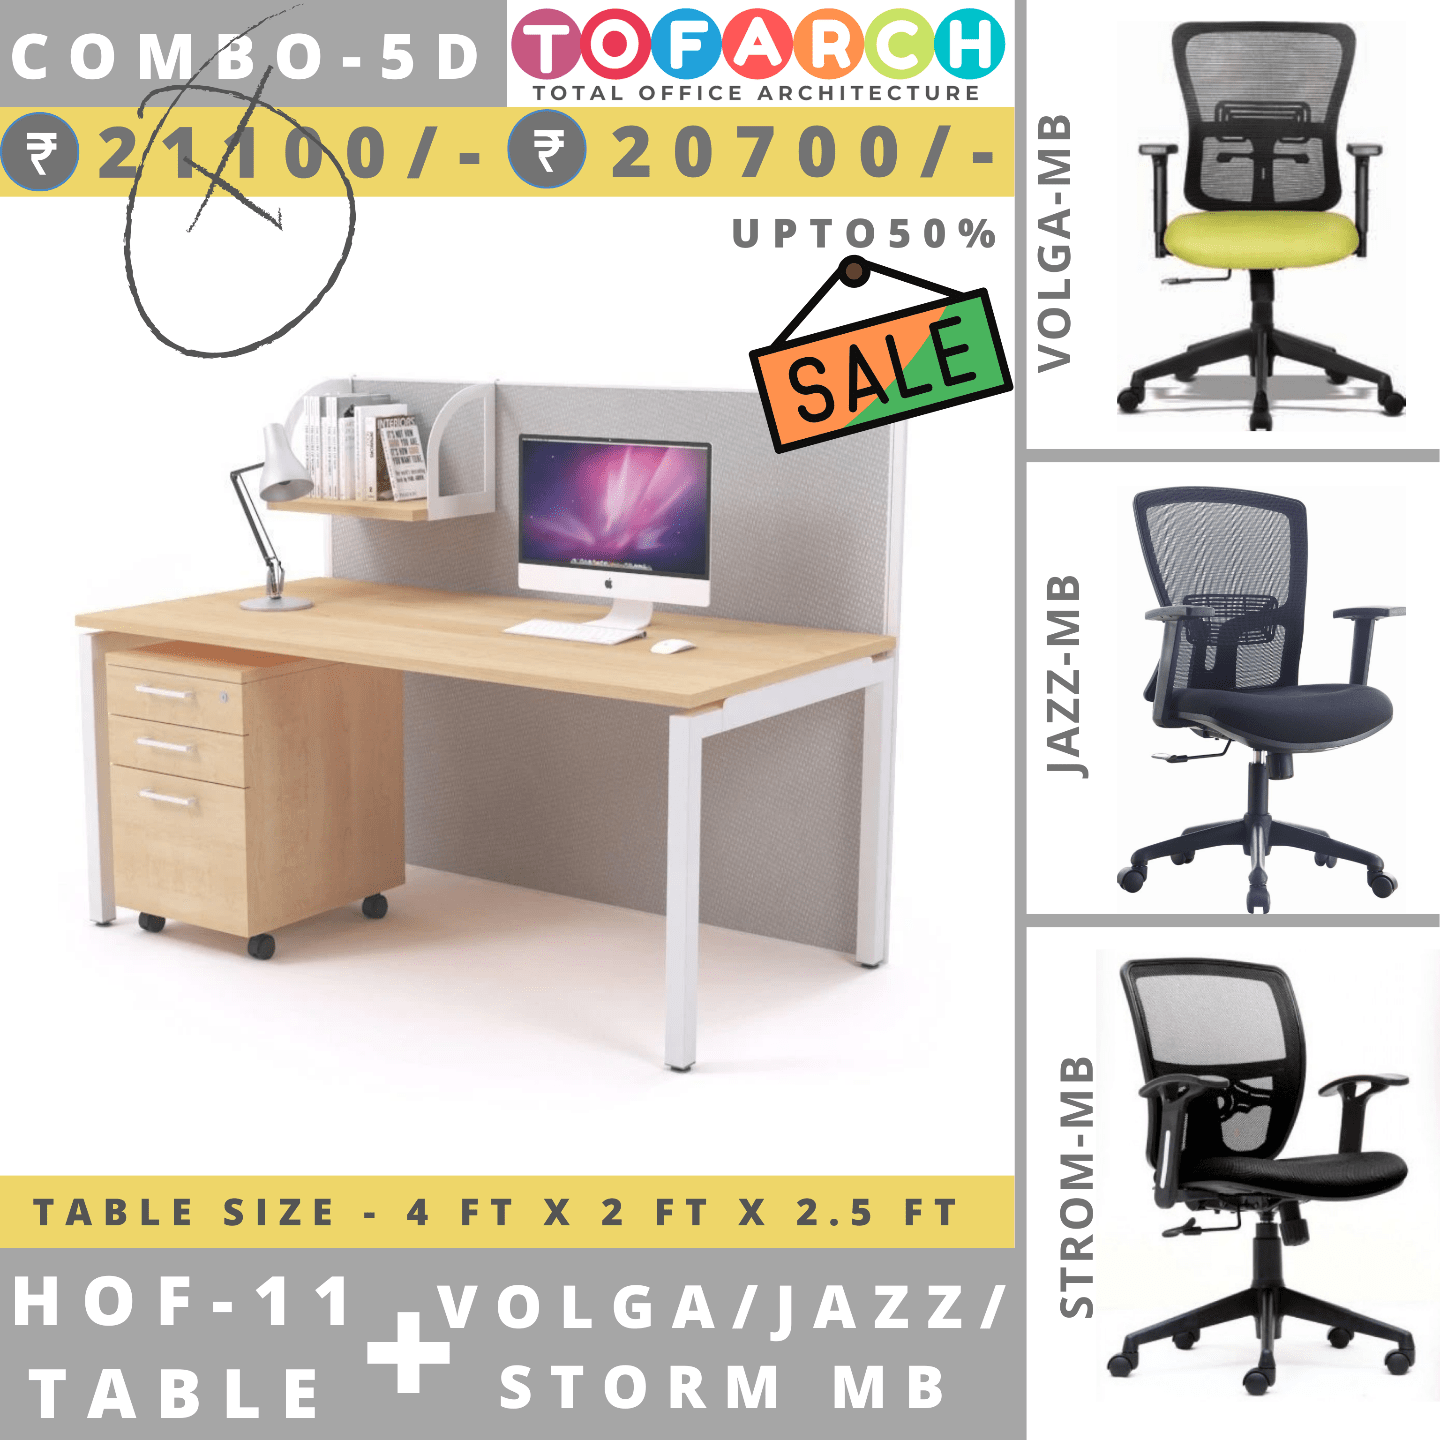 Table Chair Combo - 5D (HOF 11 Table + VOLGA / JAZZ / STROM Chair)